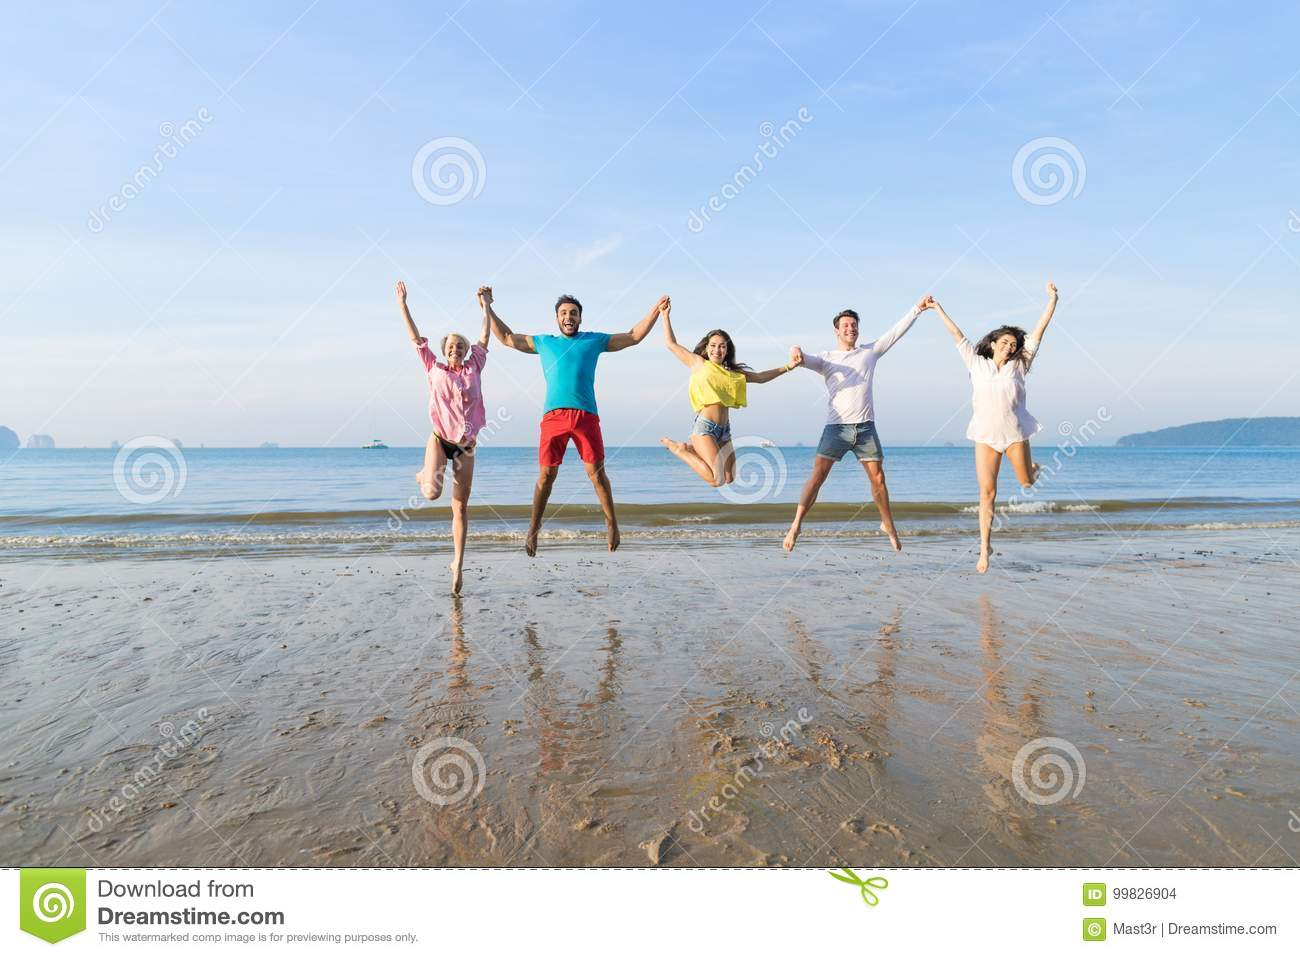 Young People Group Jump On Beach Summer Vacation, Happy Smiling Friends Sea